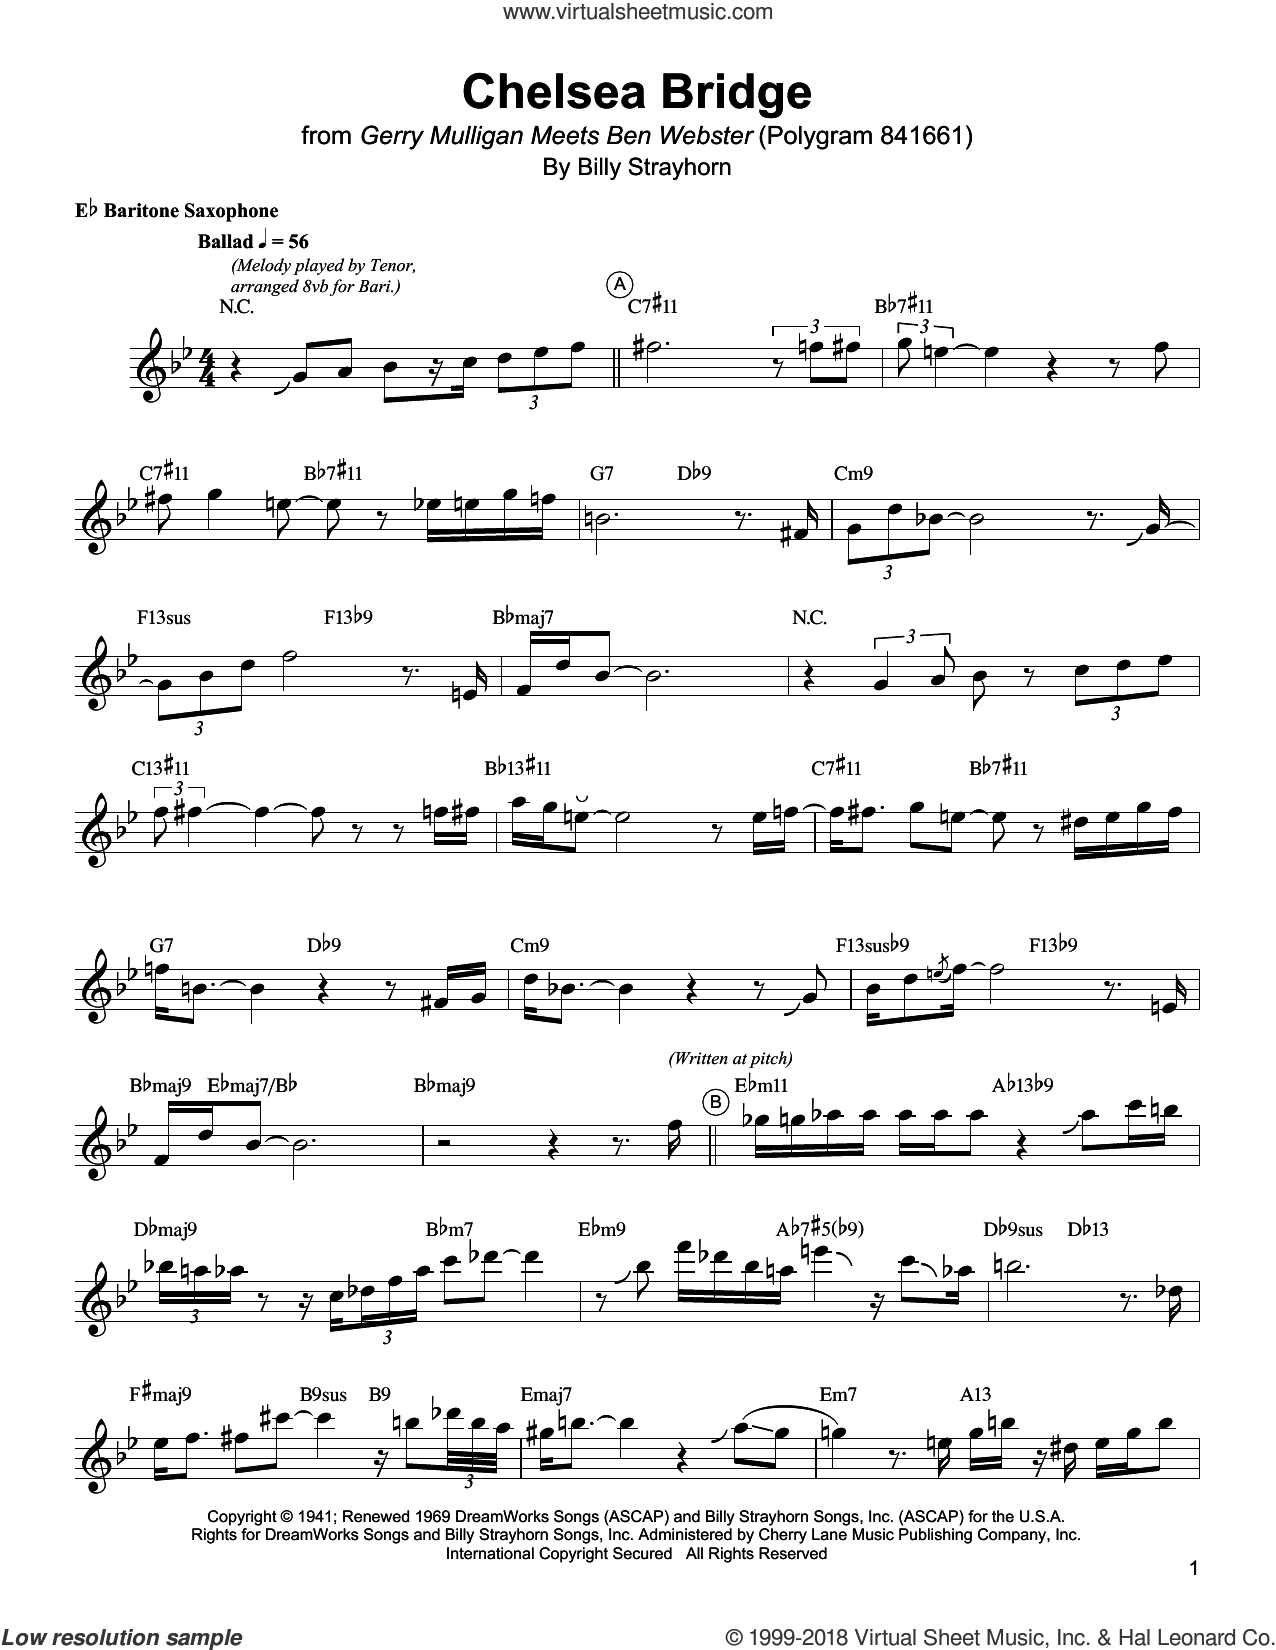 Chelsea Bridge sheet music for baritone saxophone (transcription) by Gerry Mulligan and Billy Strayhorn, intermediate skill level